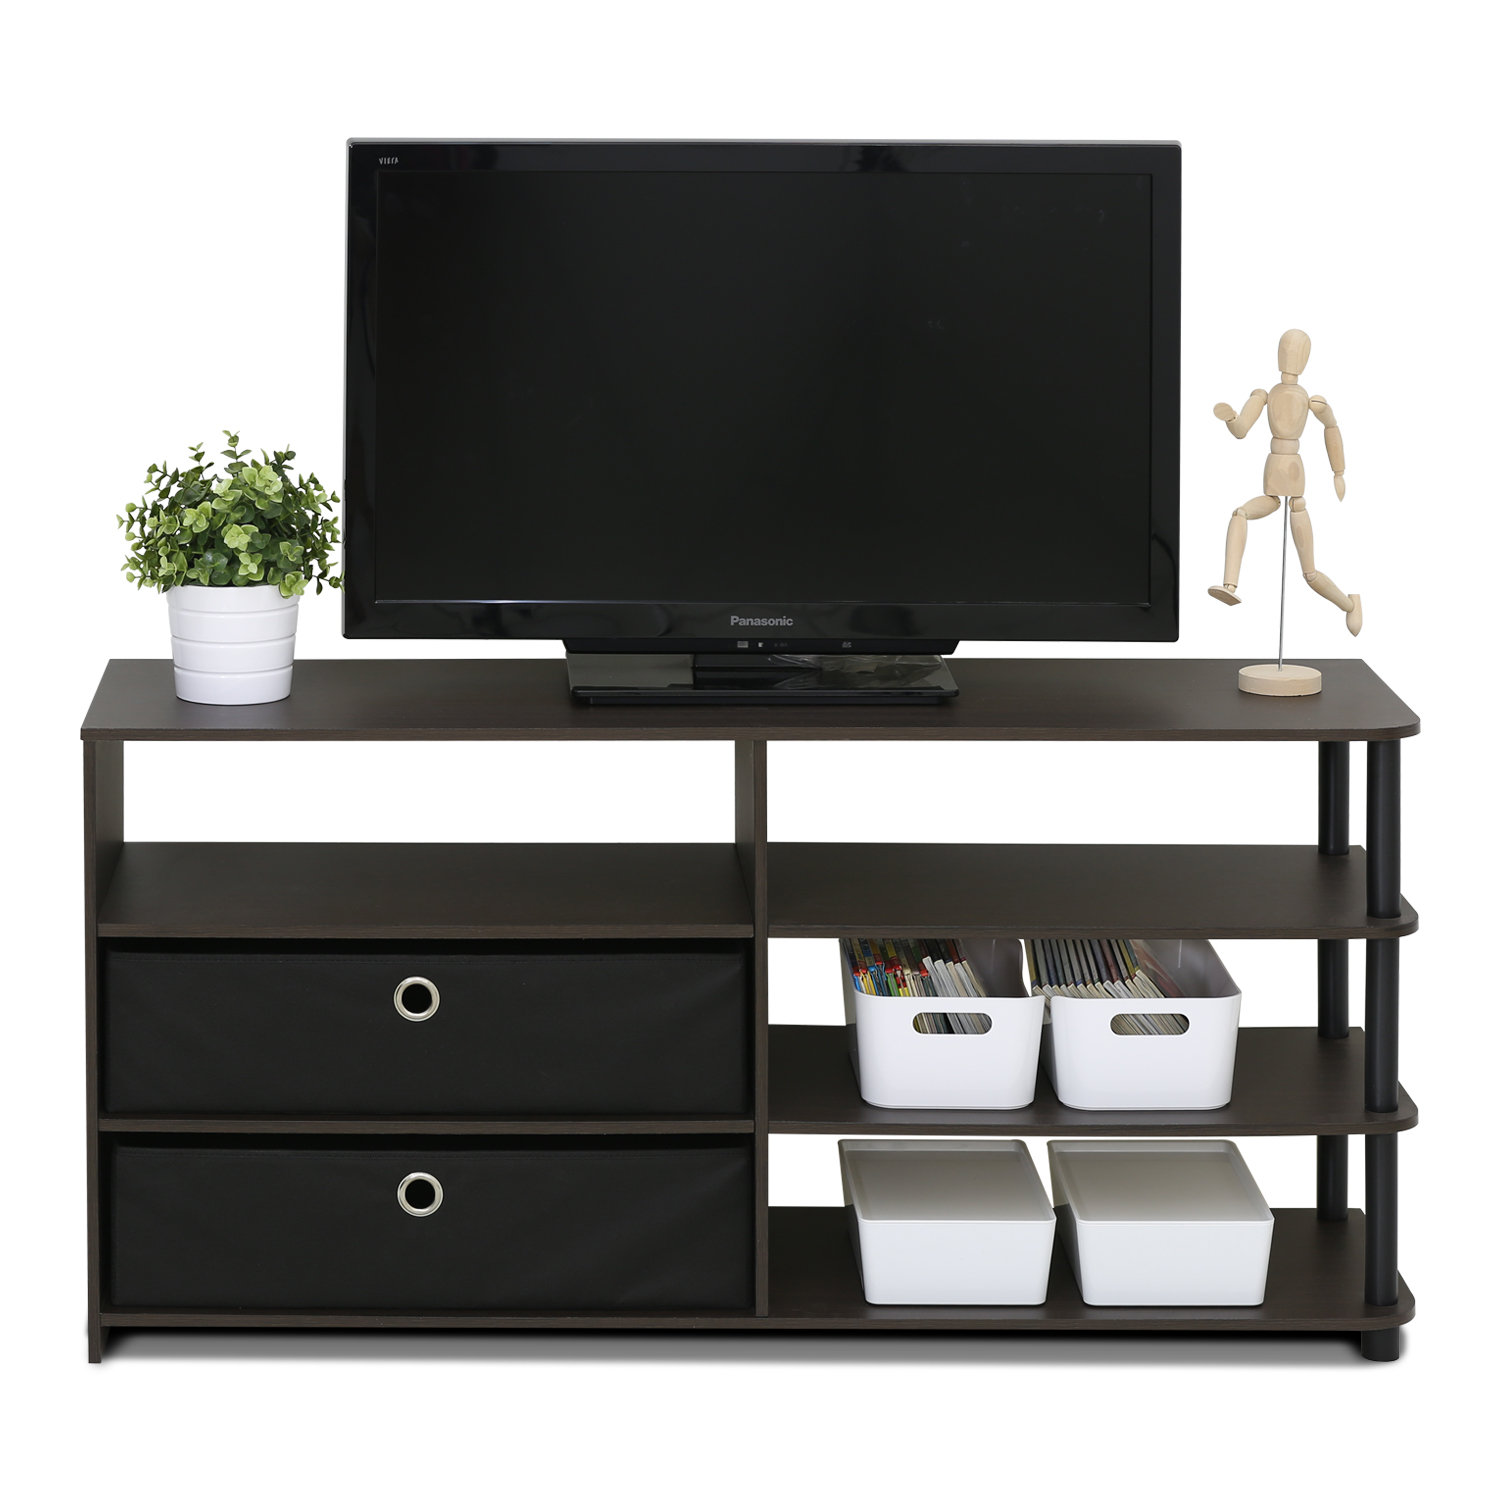 Furinno JAYA Simple Design TV Stand with Bins, Walnut by Overstock